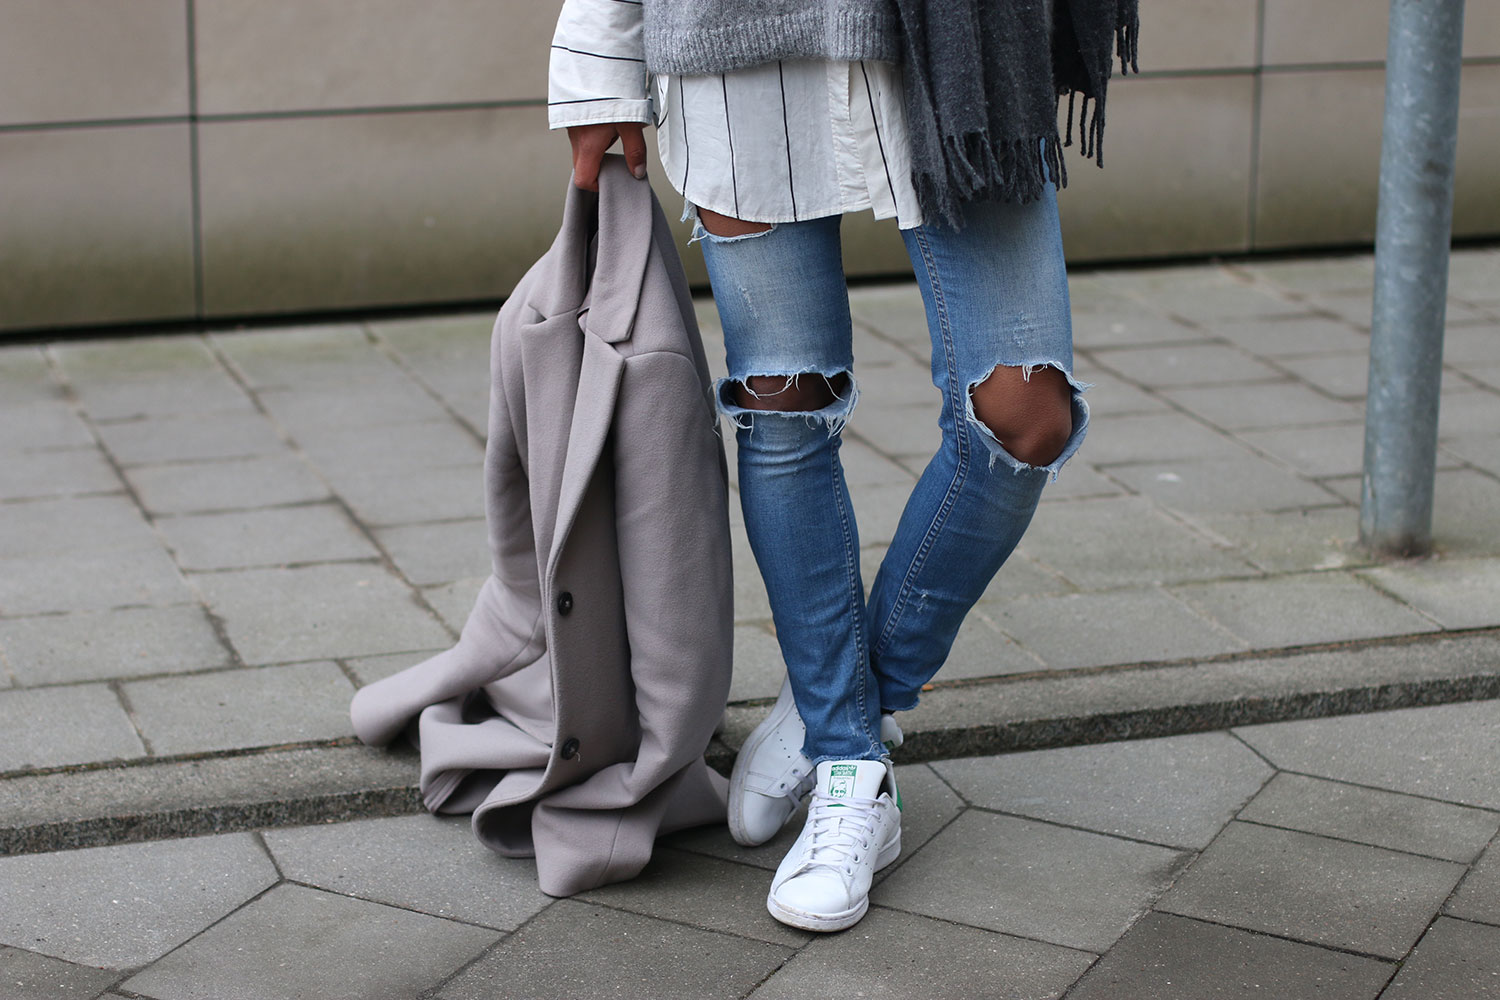 curls-all-over-ripped-jeans-and-oversized-shirt